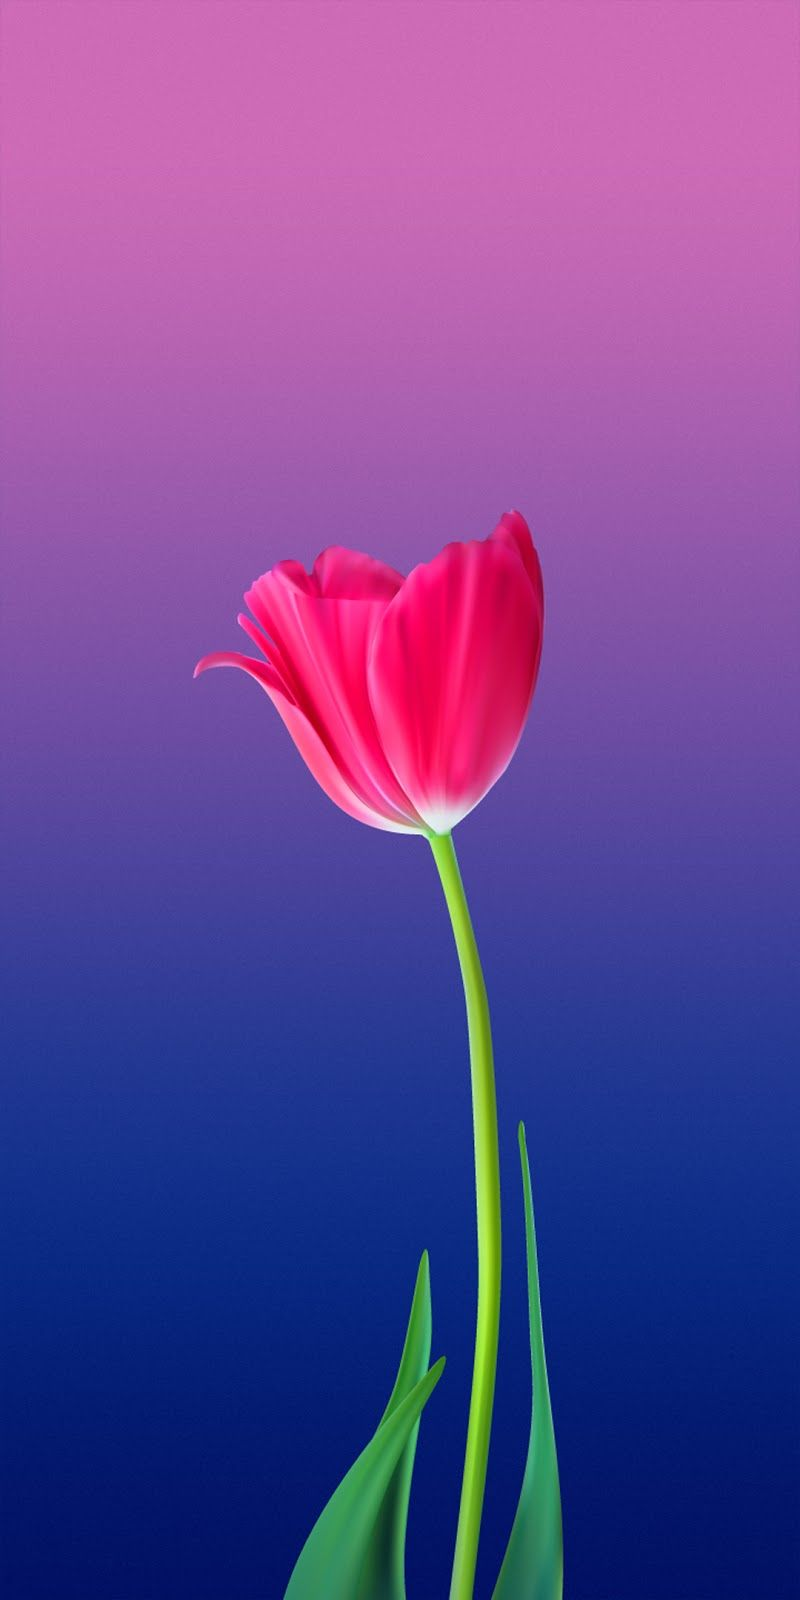 Tecno Camon Cm Stock Wallpapers 9 Wallpapers In 2020 Beautiful Flowers Wallpapers Flower Backgrounds Beautiful Nature Wallpaper